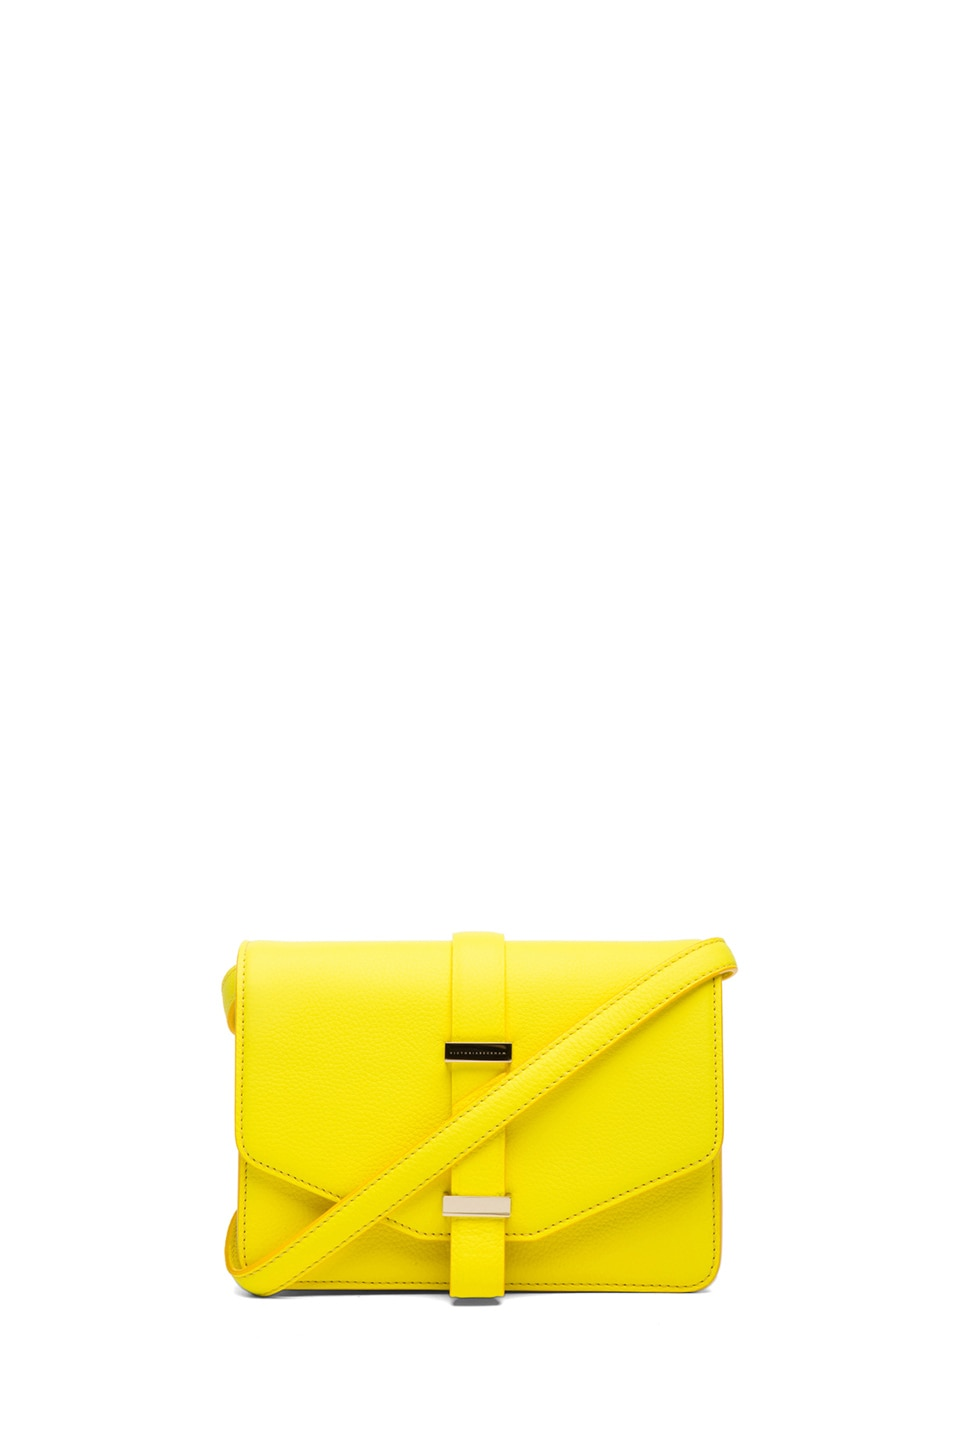 Image 1 of Victoria Beckham Mini Satchel in Acid Lemon